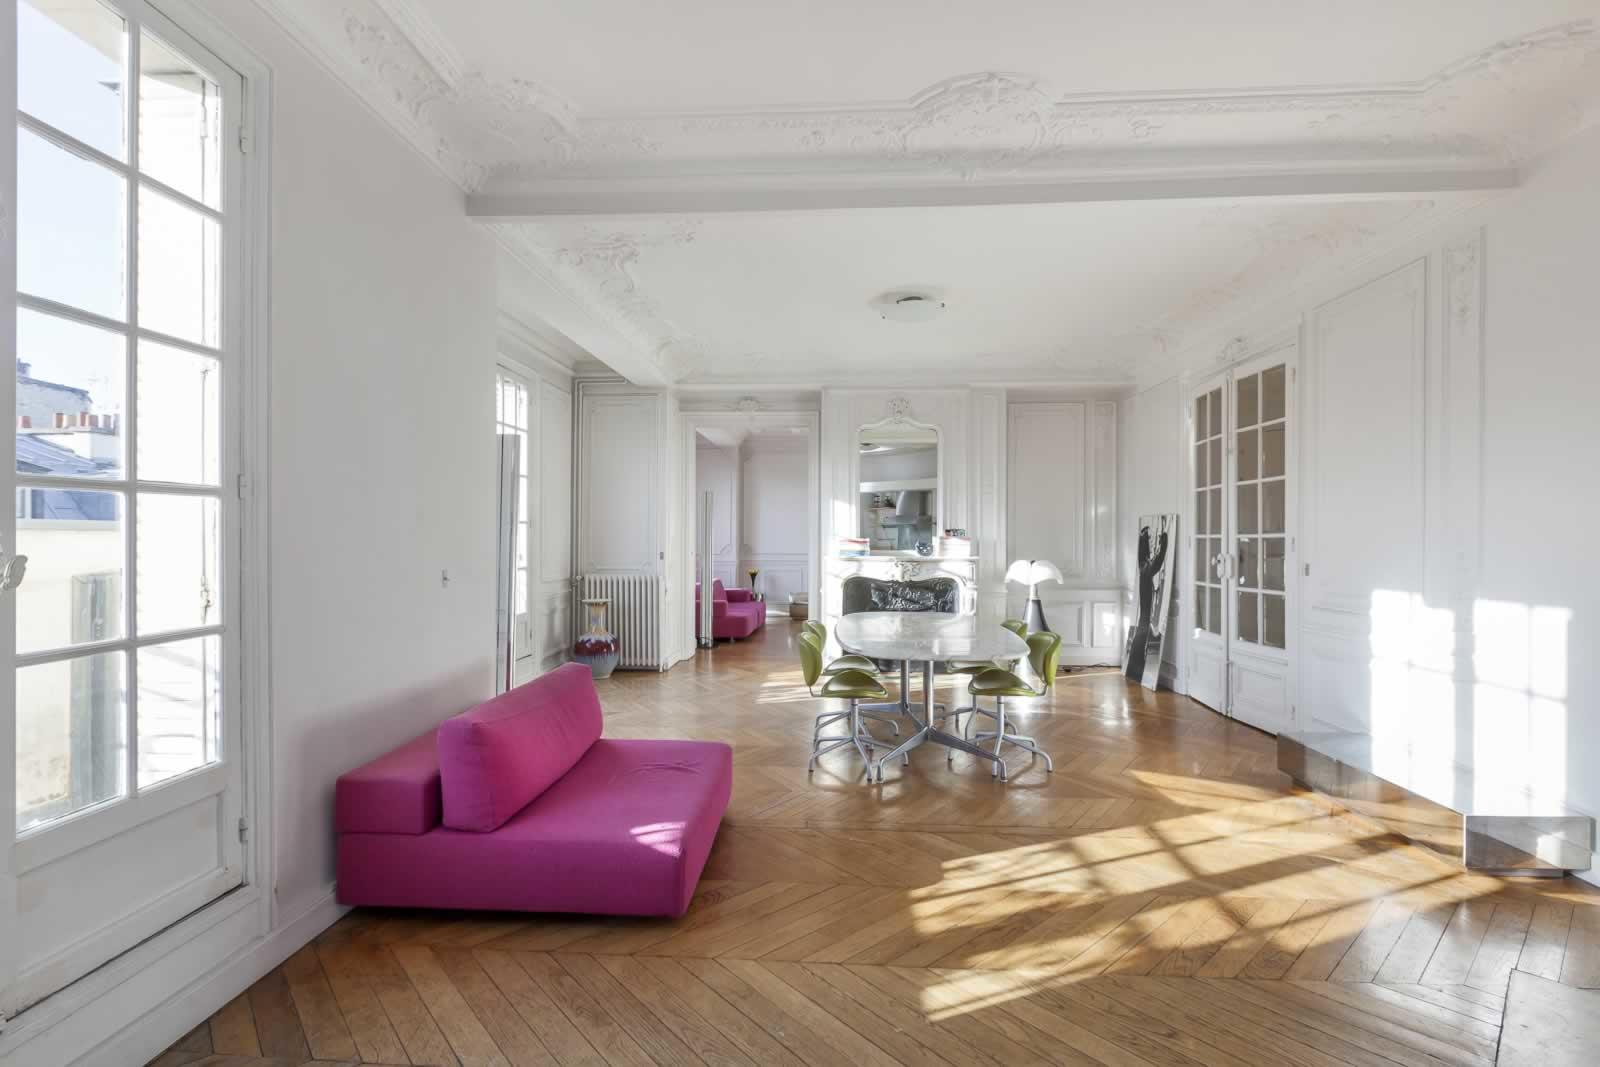 beautiful-apartment-for-sale-miromesnil-monceau-district-fireplace-moulding-parquet-floors-cellar